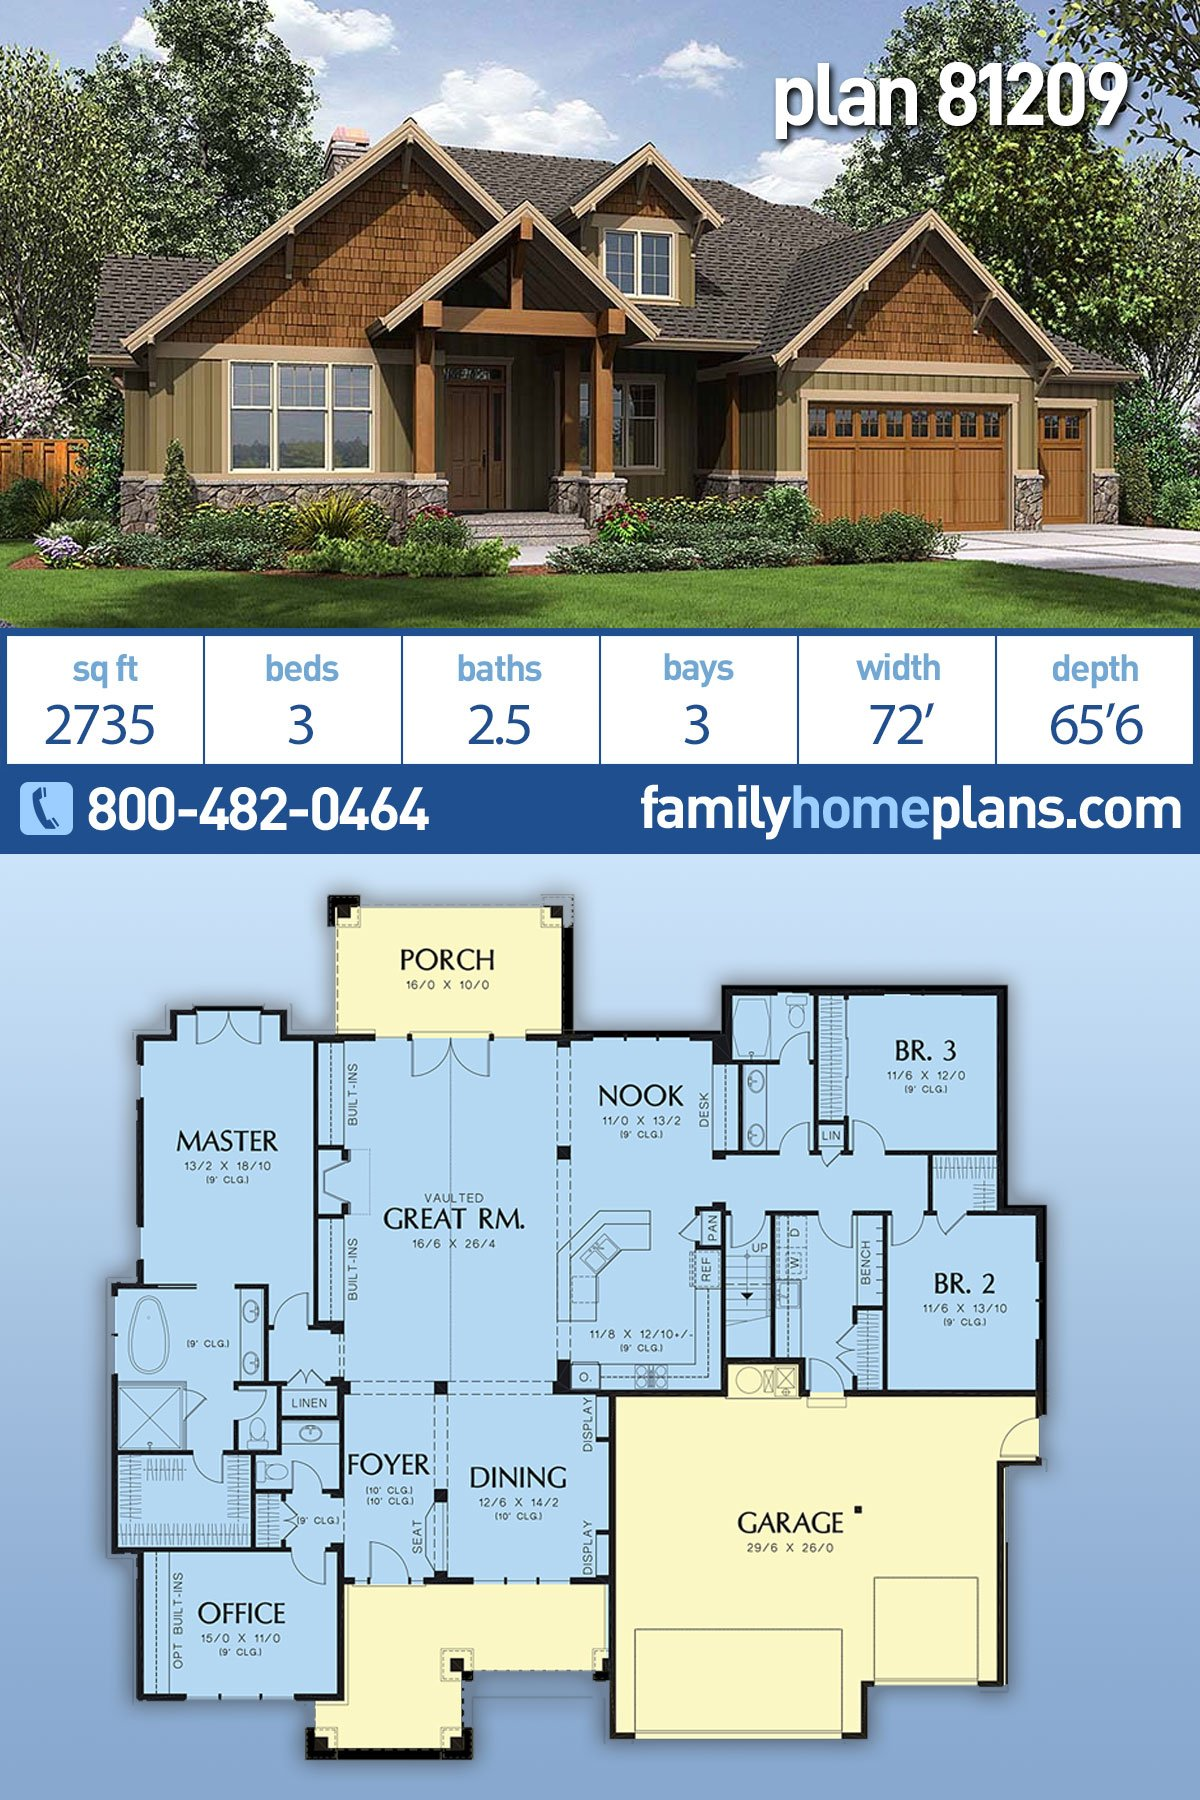 Bungalow, Craftsman House Plan 81209 with 3 Beds, 3 Baths, 3 Car Garage